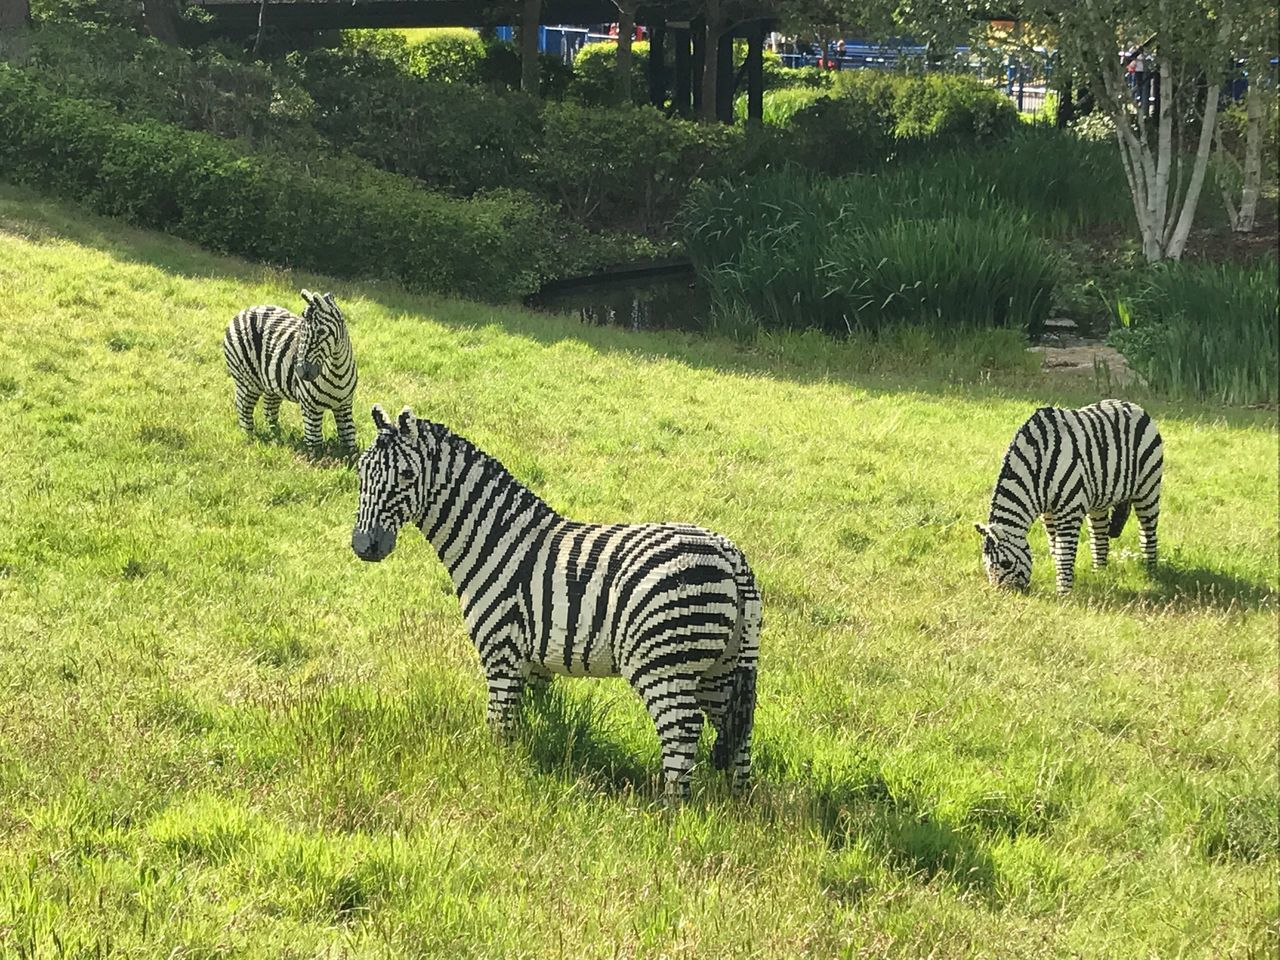 zebra, striped, animals in the wild, animal themes, grass, mammal, green color, animal wildlife, nature, safari animals, day, animal markings, outdoors, no people, tiger